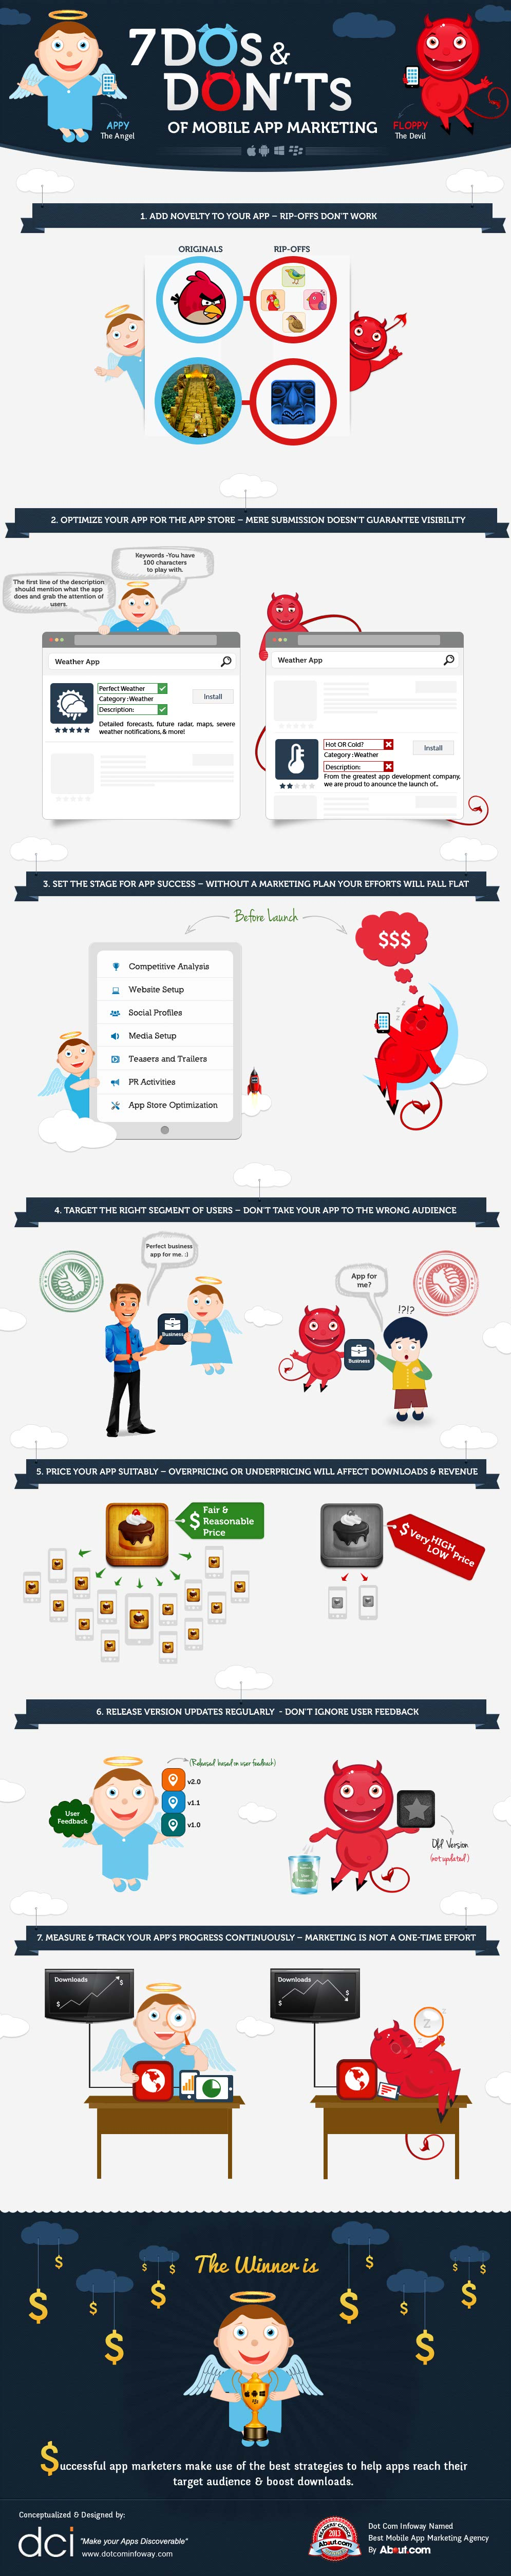 Mobile App Marketing Guide-Infographic